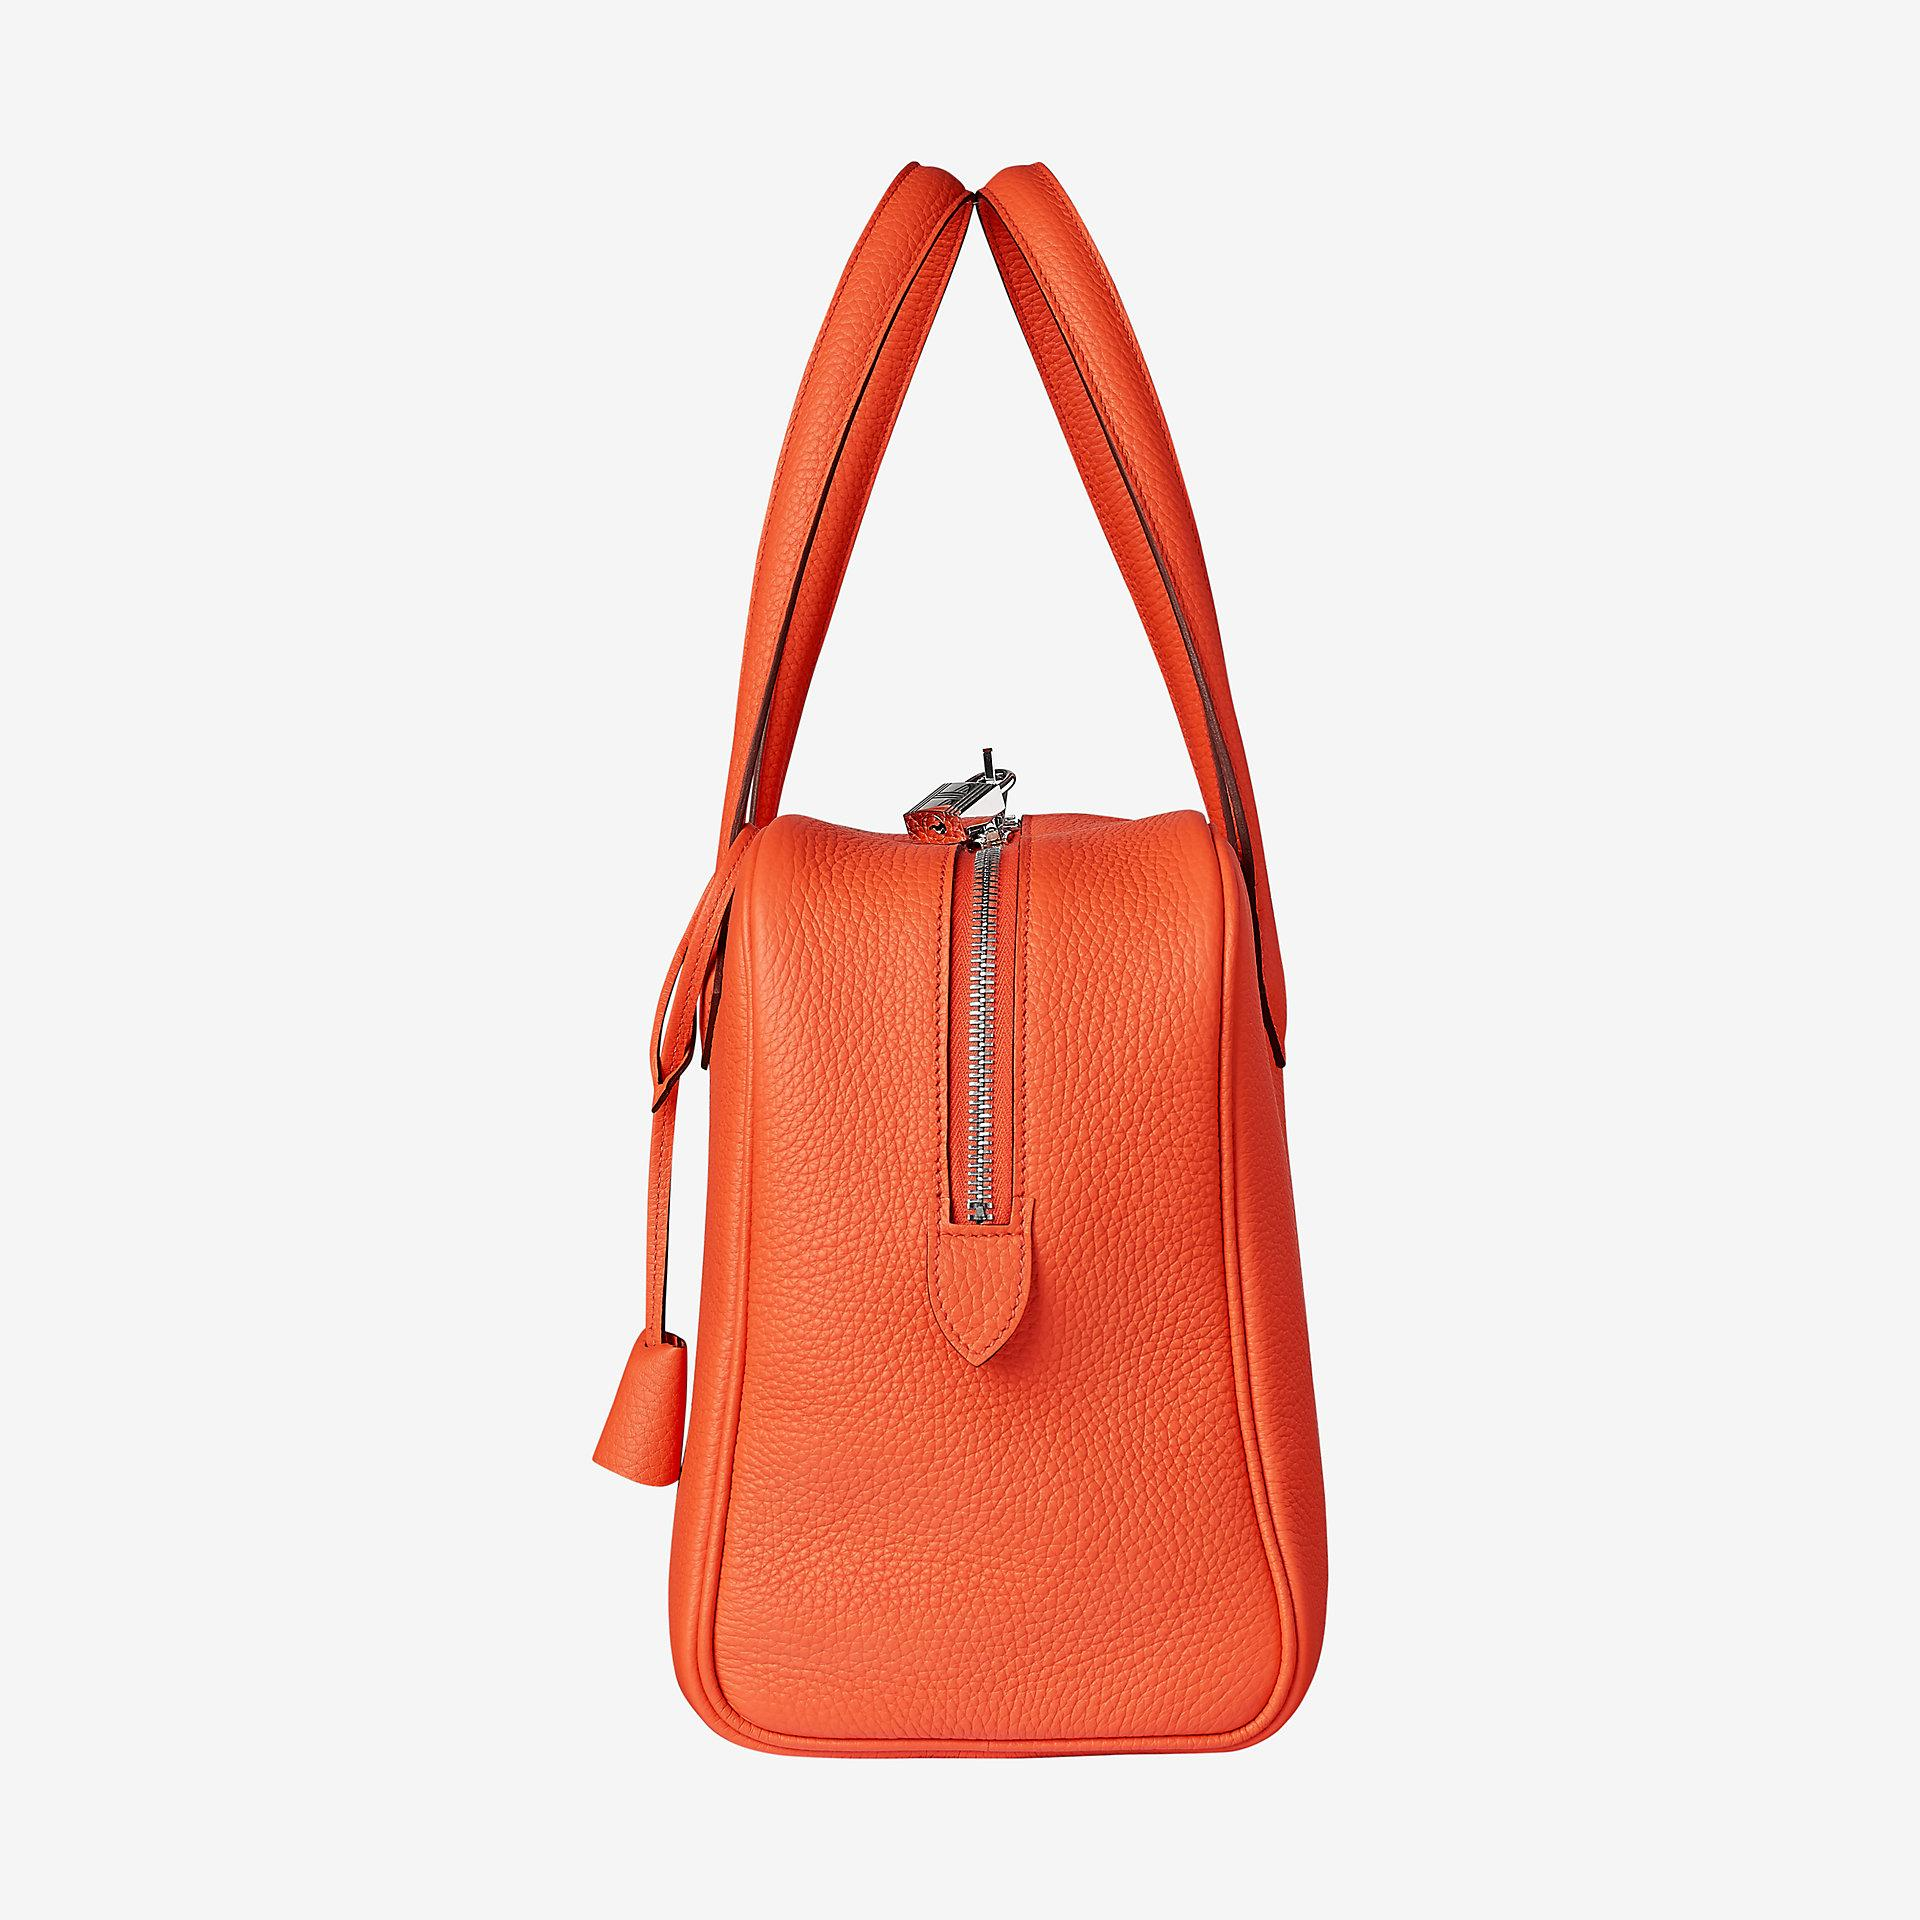 0642069809 ... discount code for hermes tote bag in taurillon clemence leather with  canvas lining. palladium plated